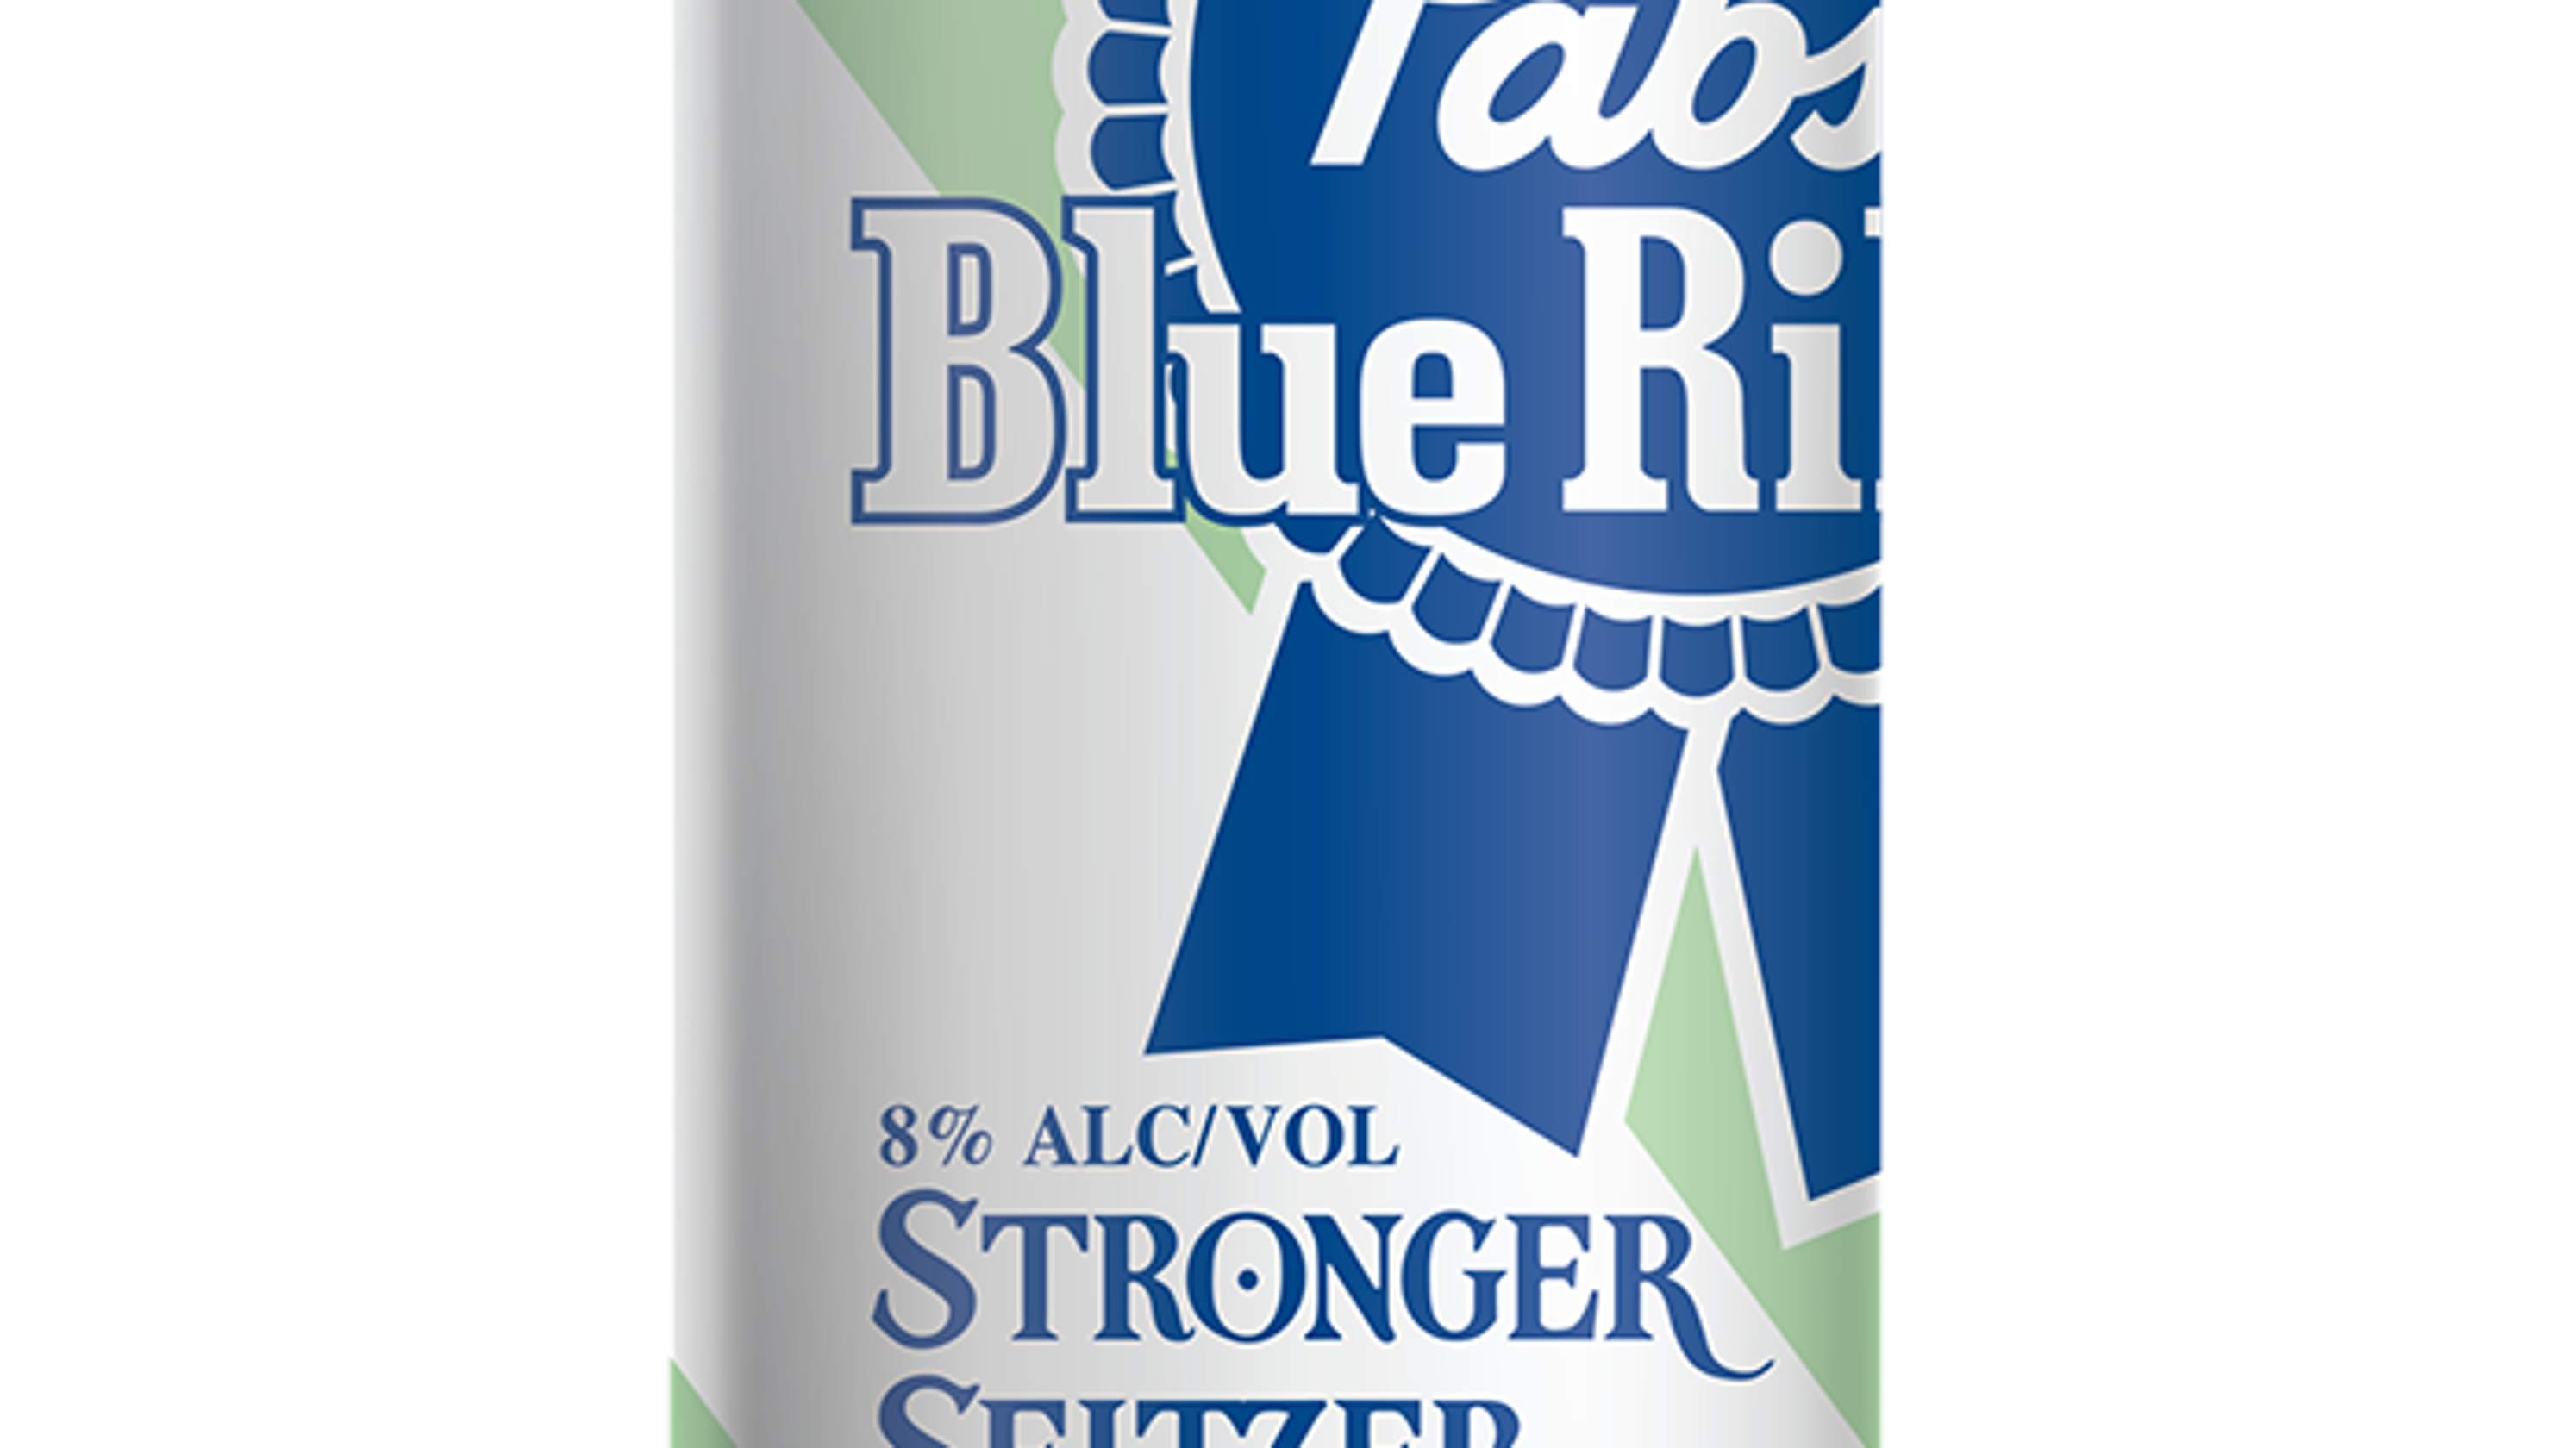 Pabst Blue Ribbon introduces a hard seltzer, and it's a big